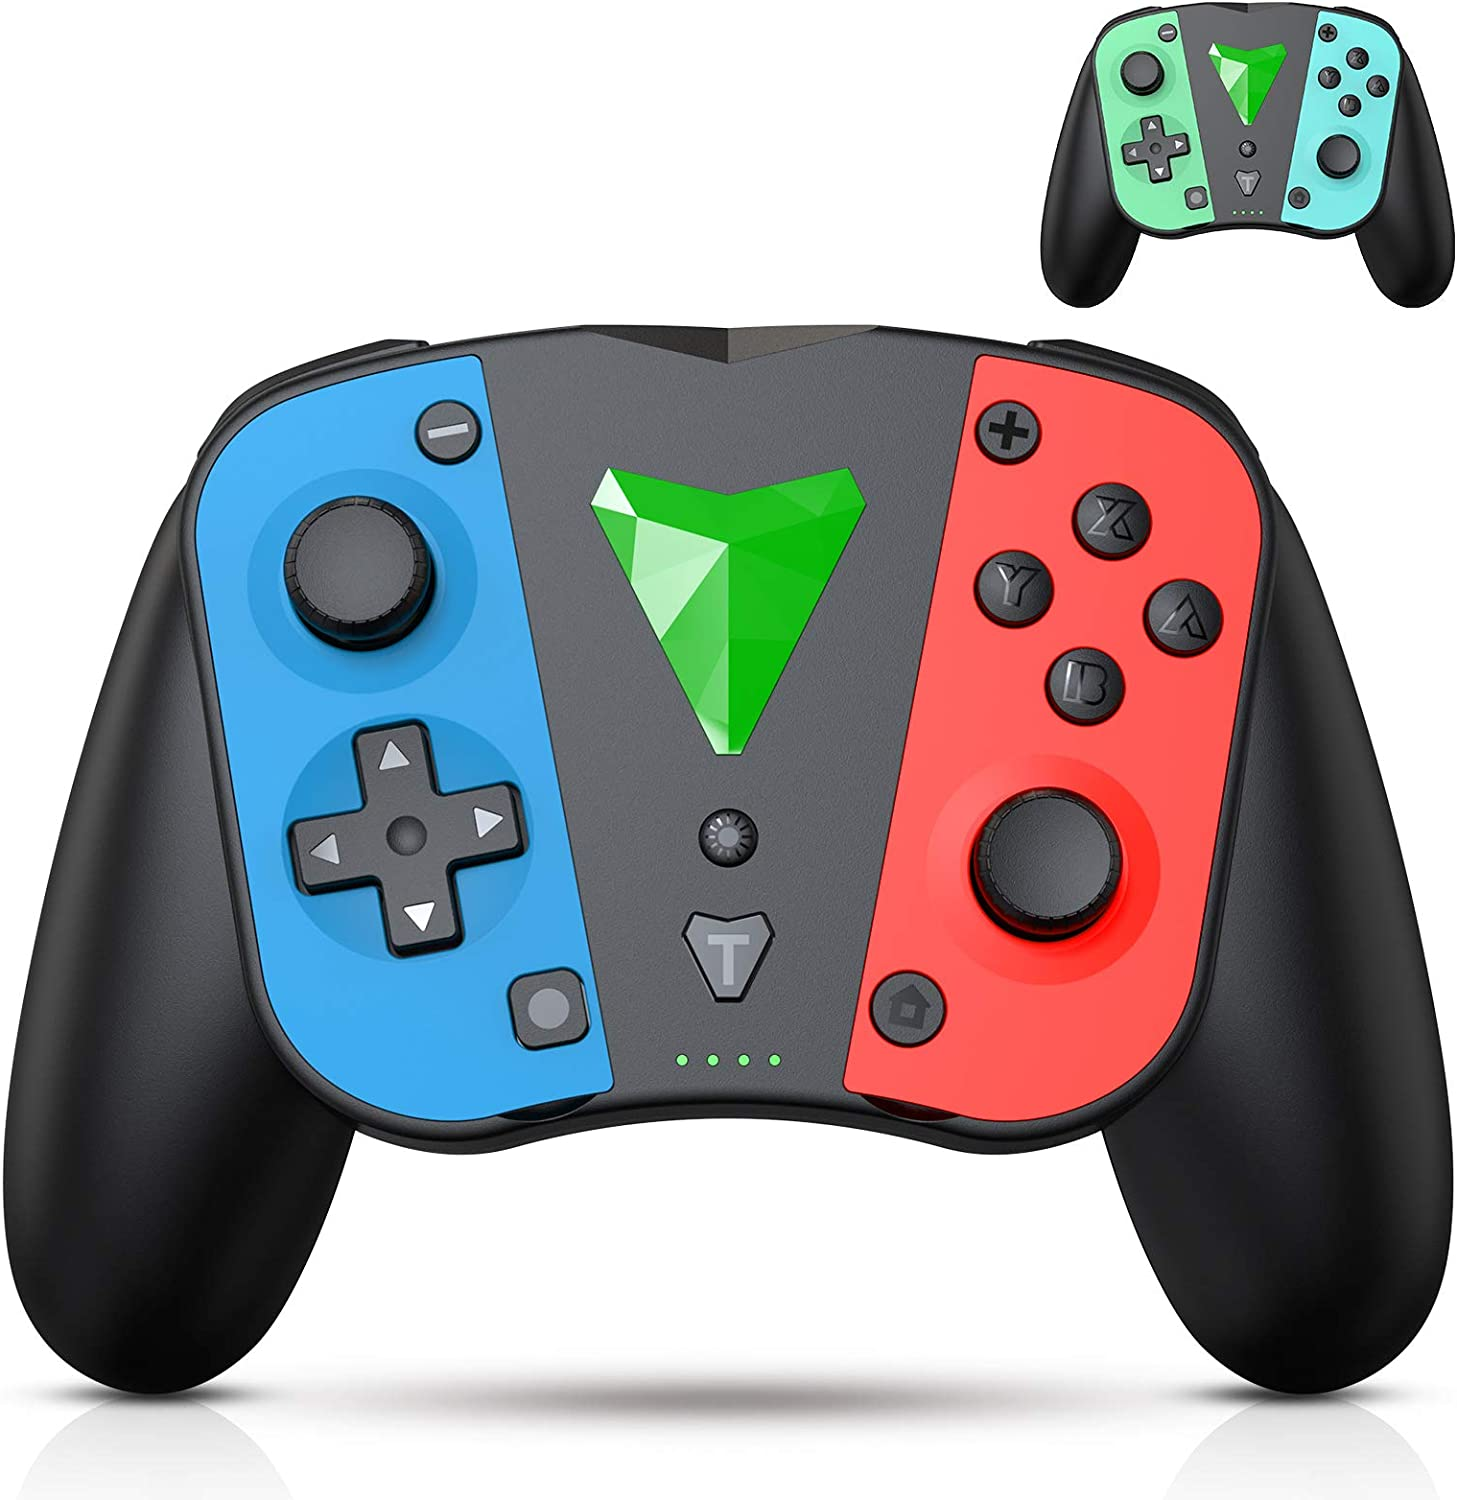 RegeMoudal Wireless Controller for Nintendo Switch $17.50 Coupon